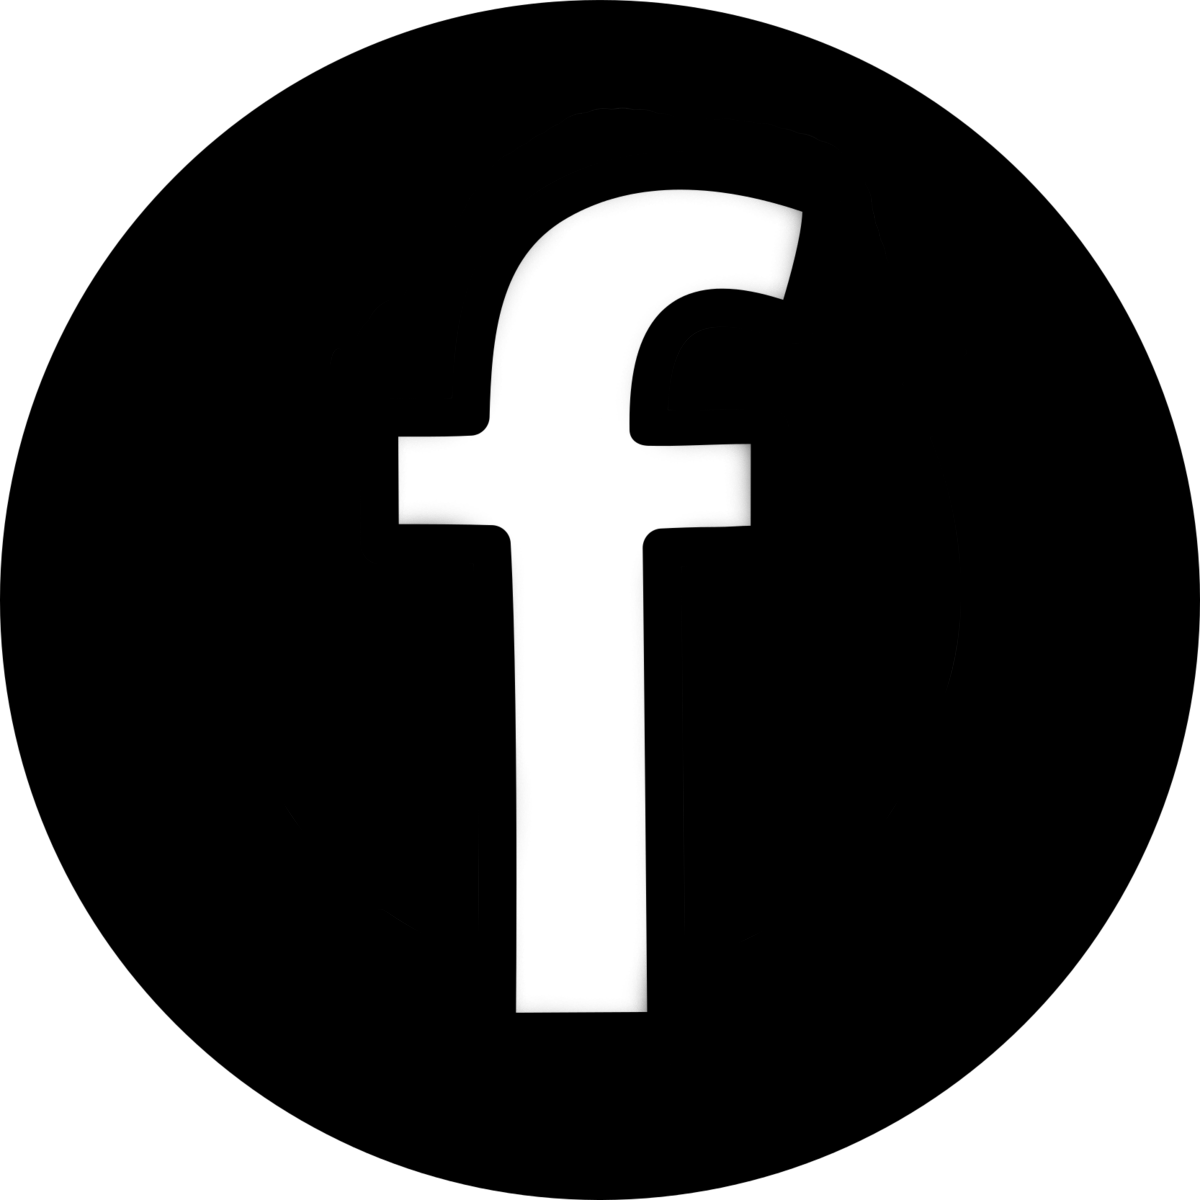 Black F Logo, Square, Symbol, Icon PNG Facebook #32258